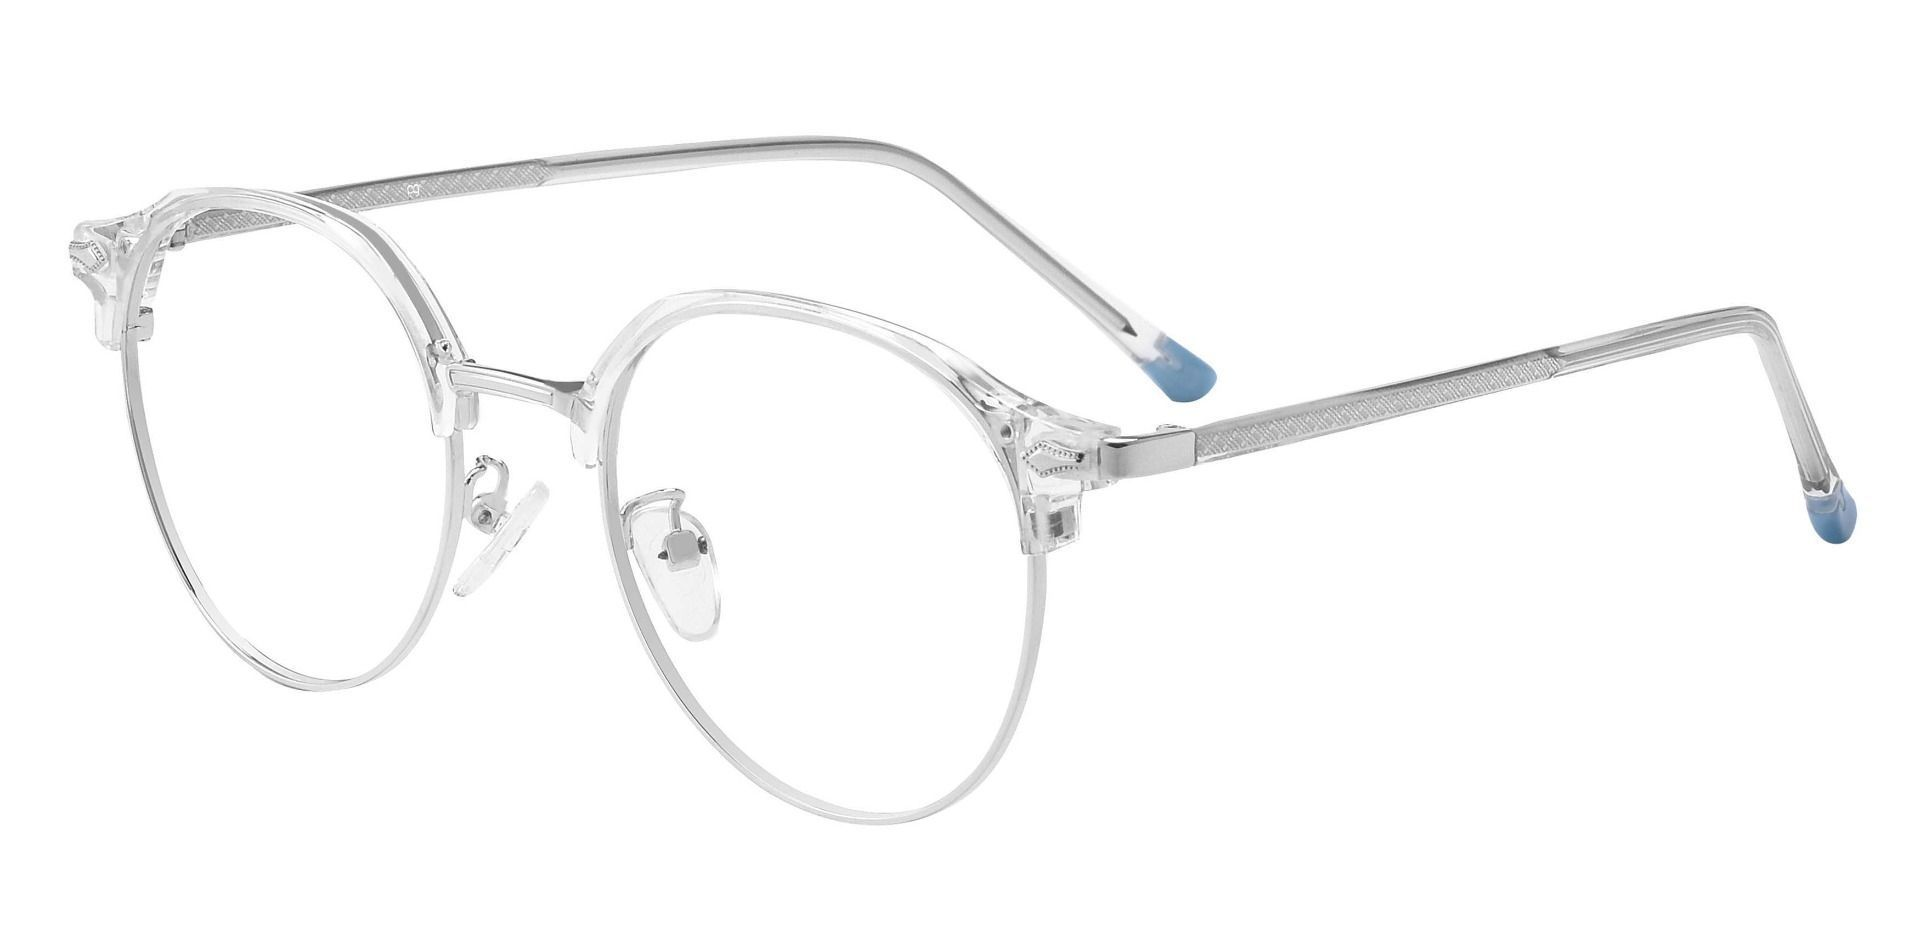 Maynard Browline Prescription Glasses - Silver